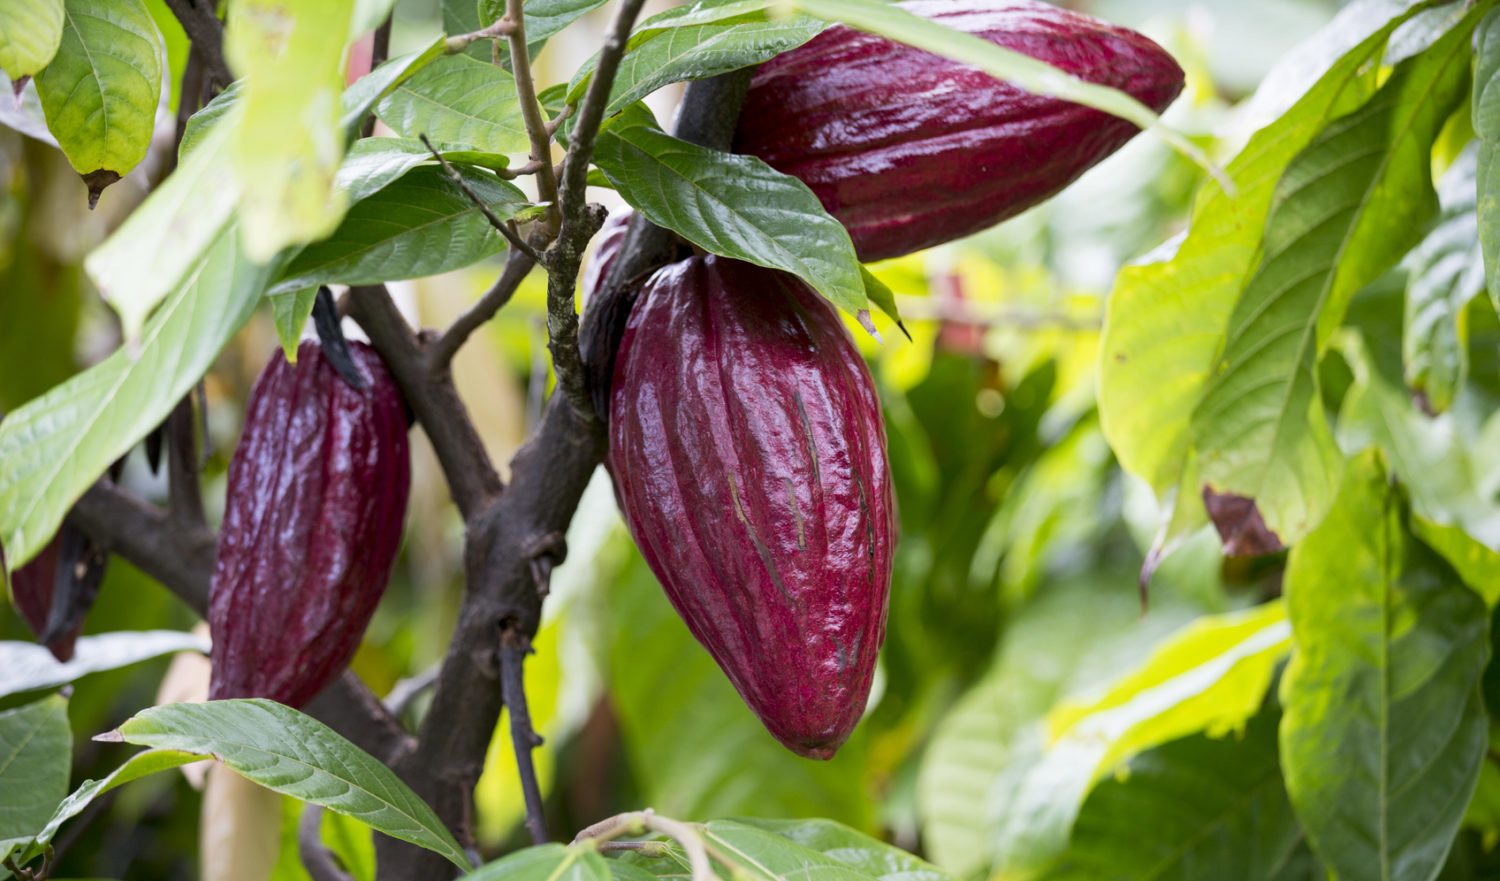 The ripening cacao cocoa bean, used to make chocolate.